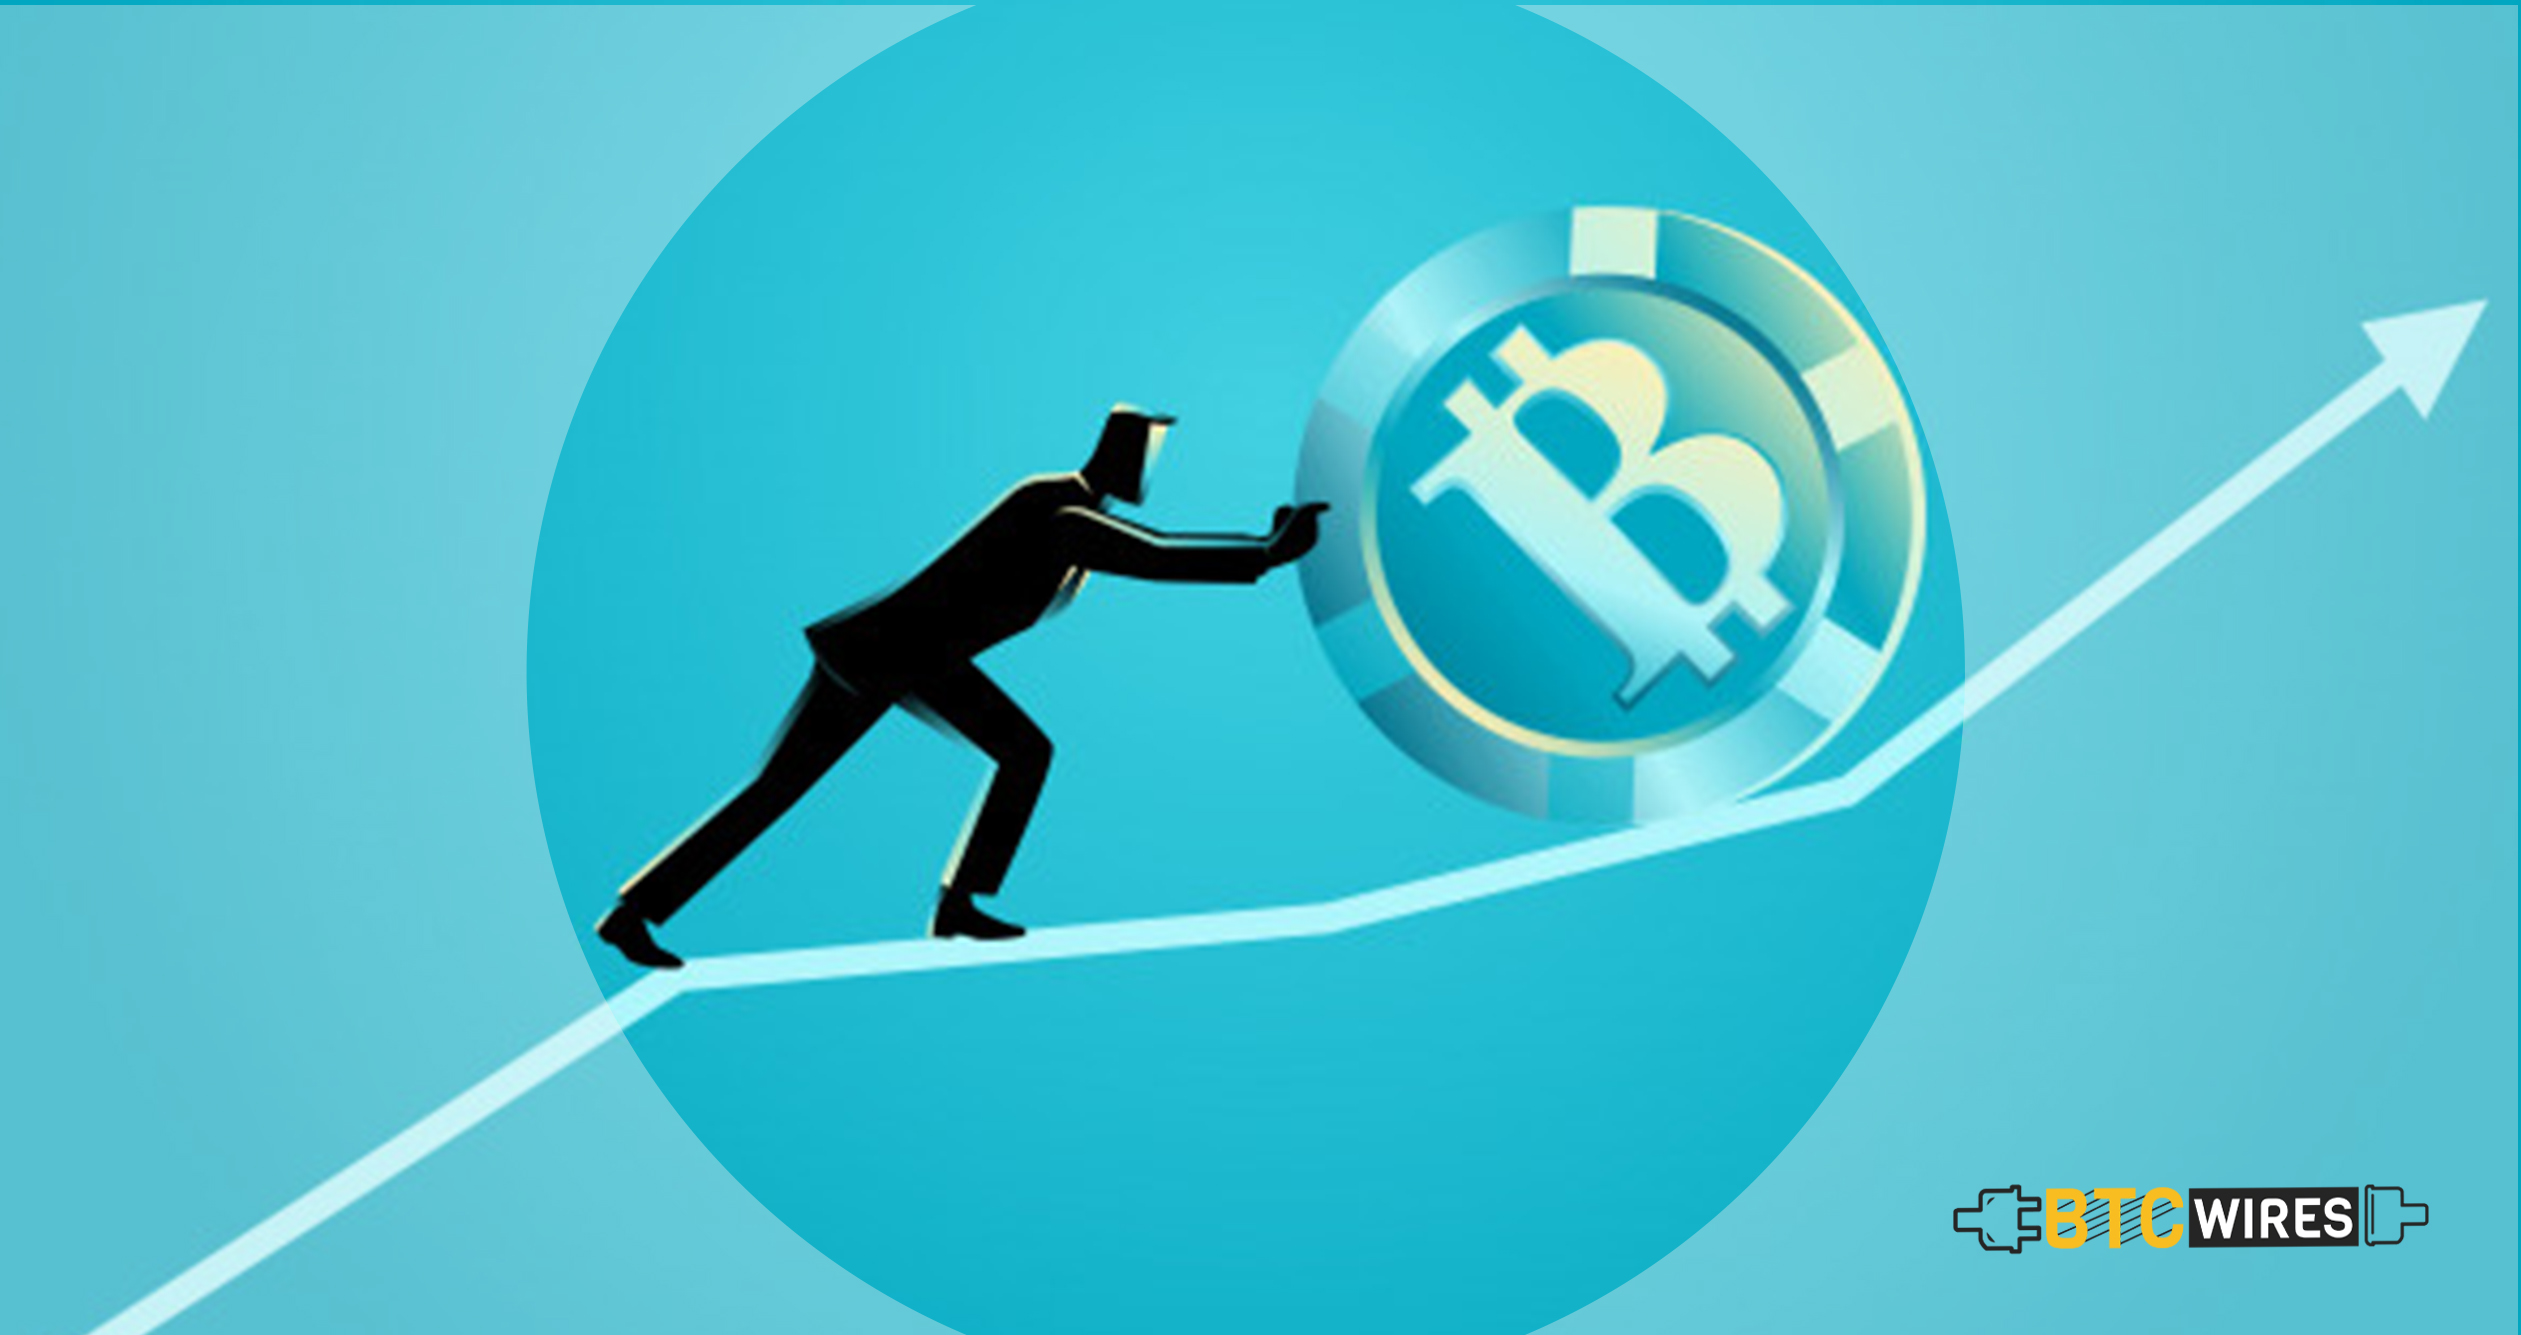 Increasing Number of Bitcoin Payments